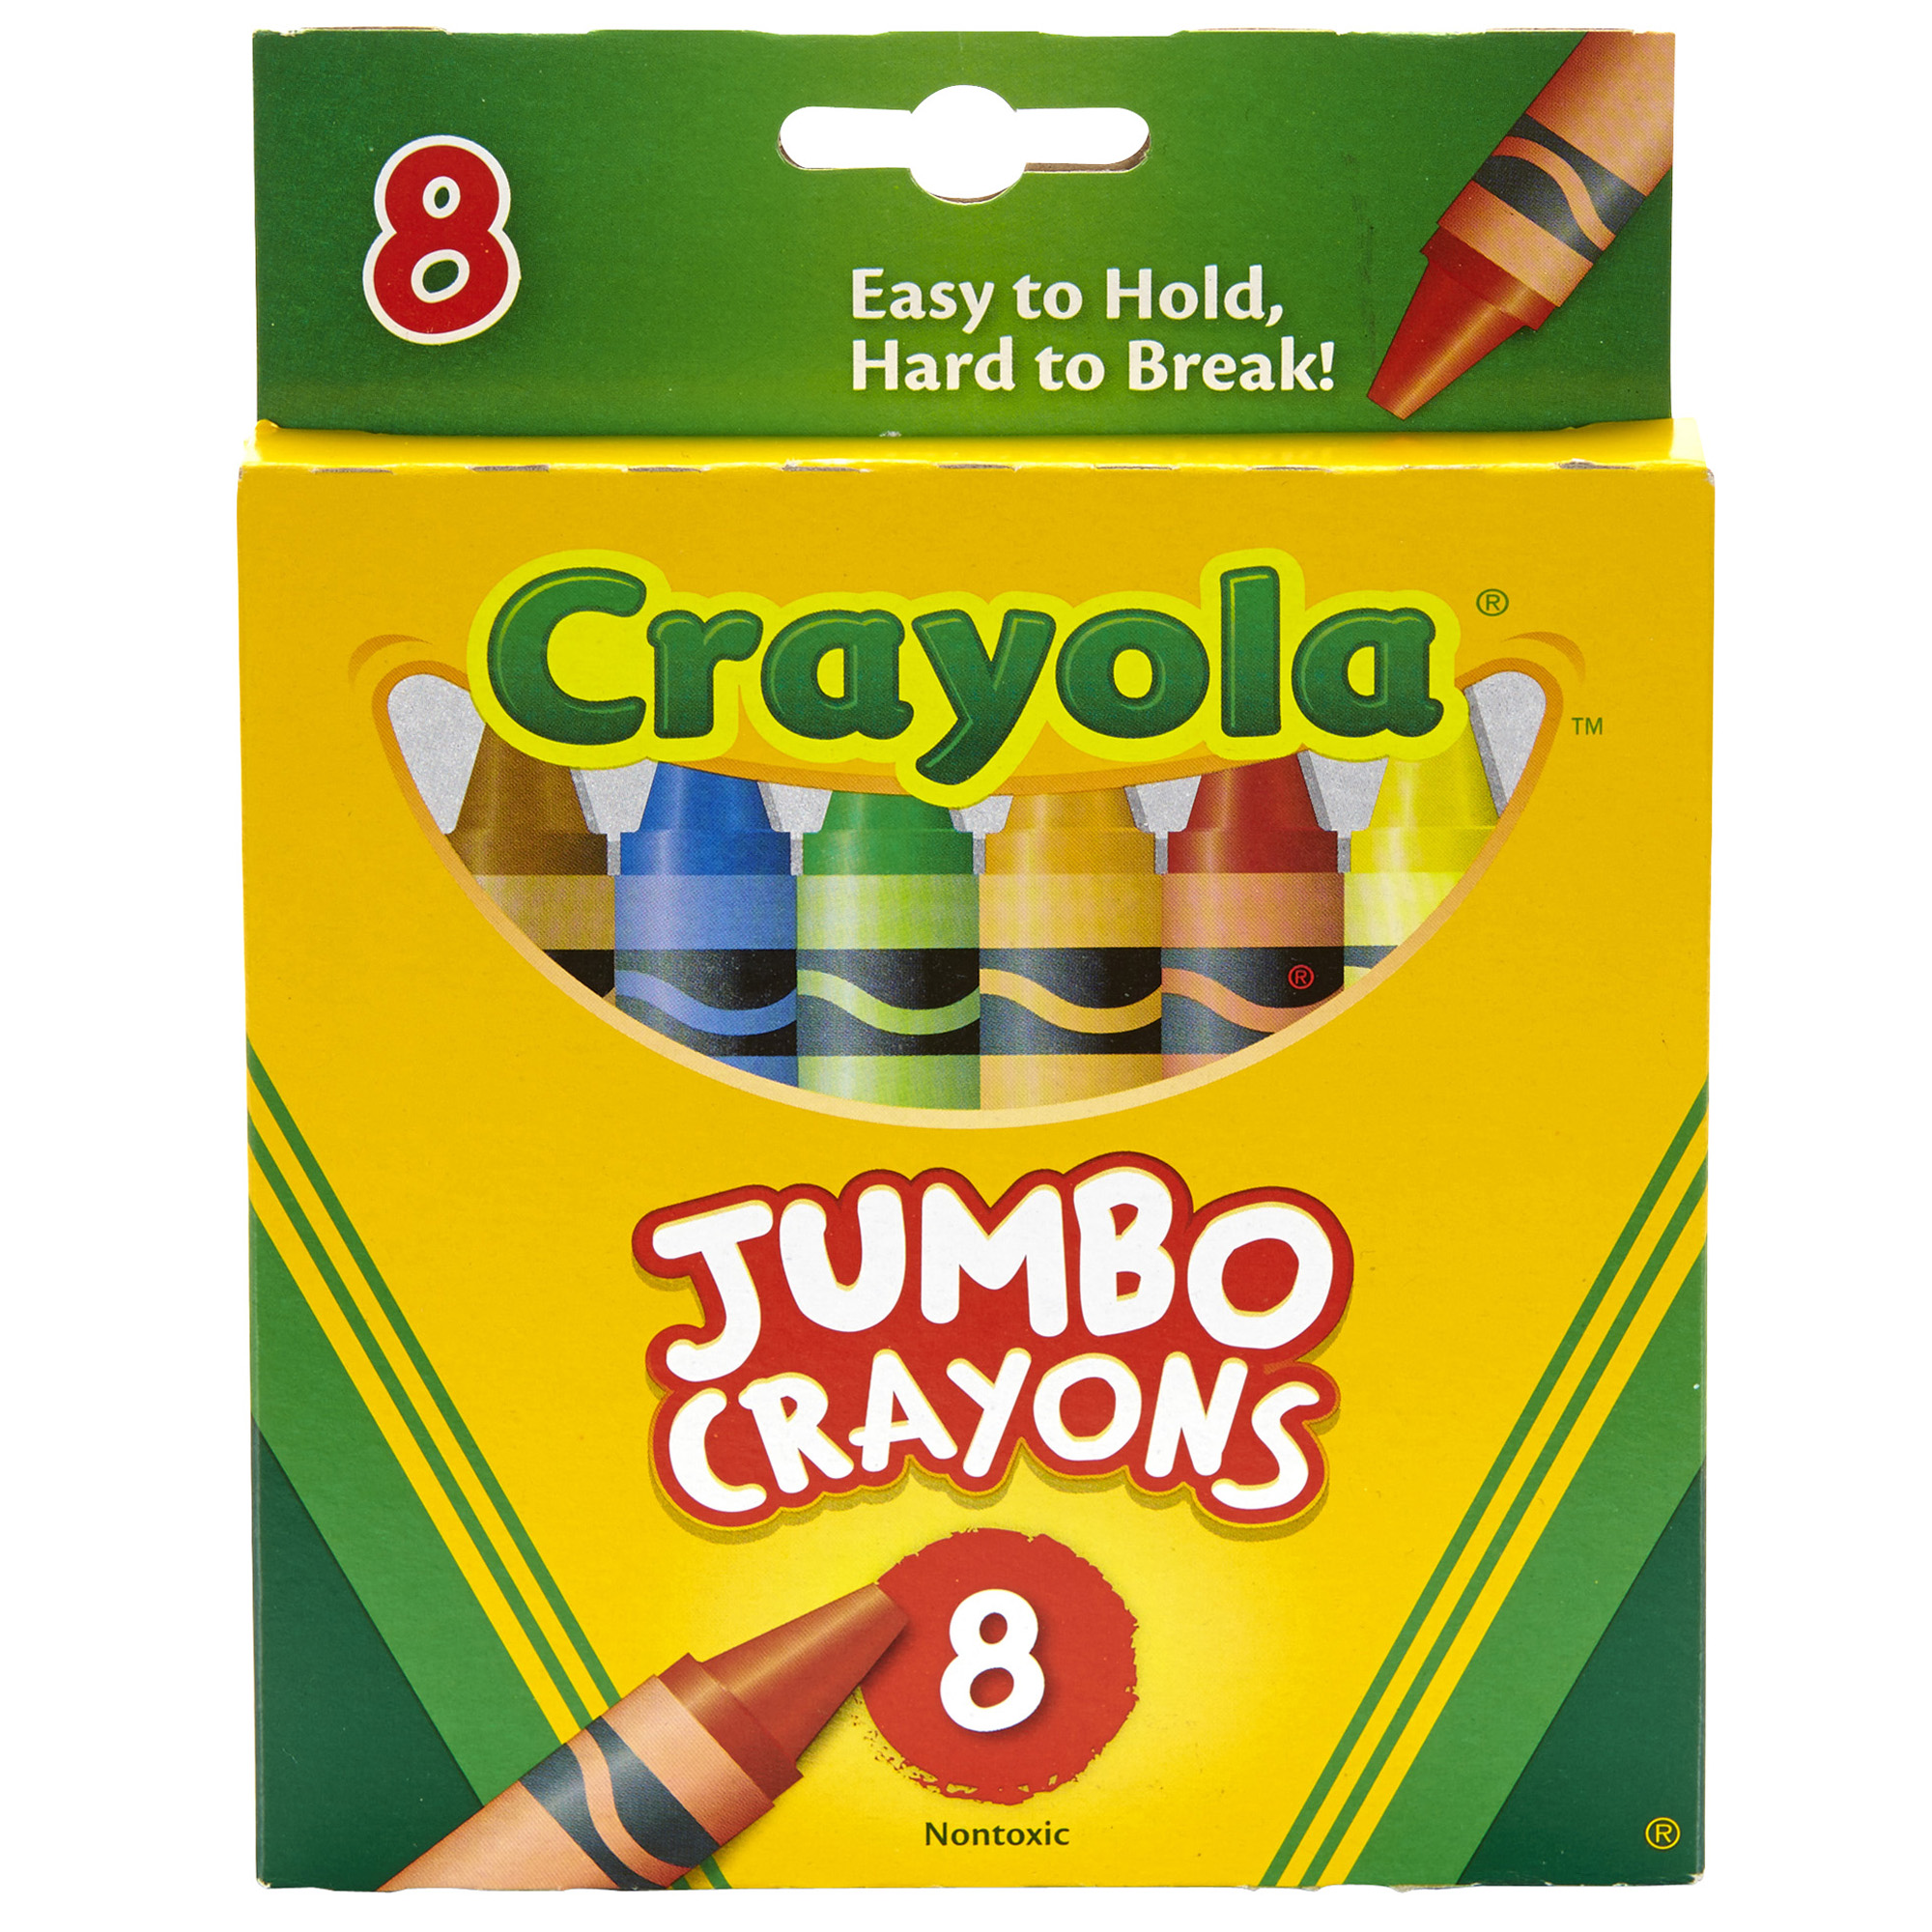 Crayola Crayons, Jumbo Size, 8 Colors Per Box, Set Of 6 Boxes